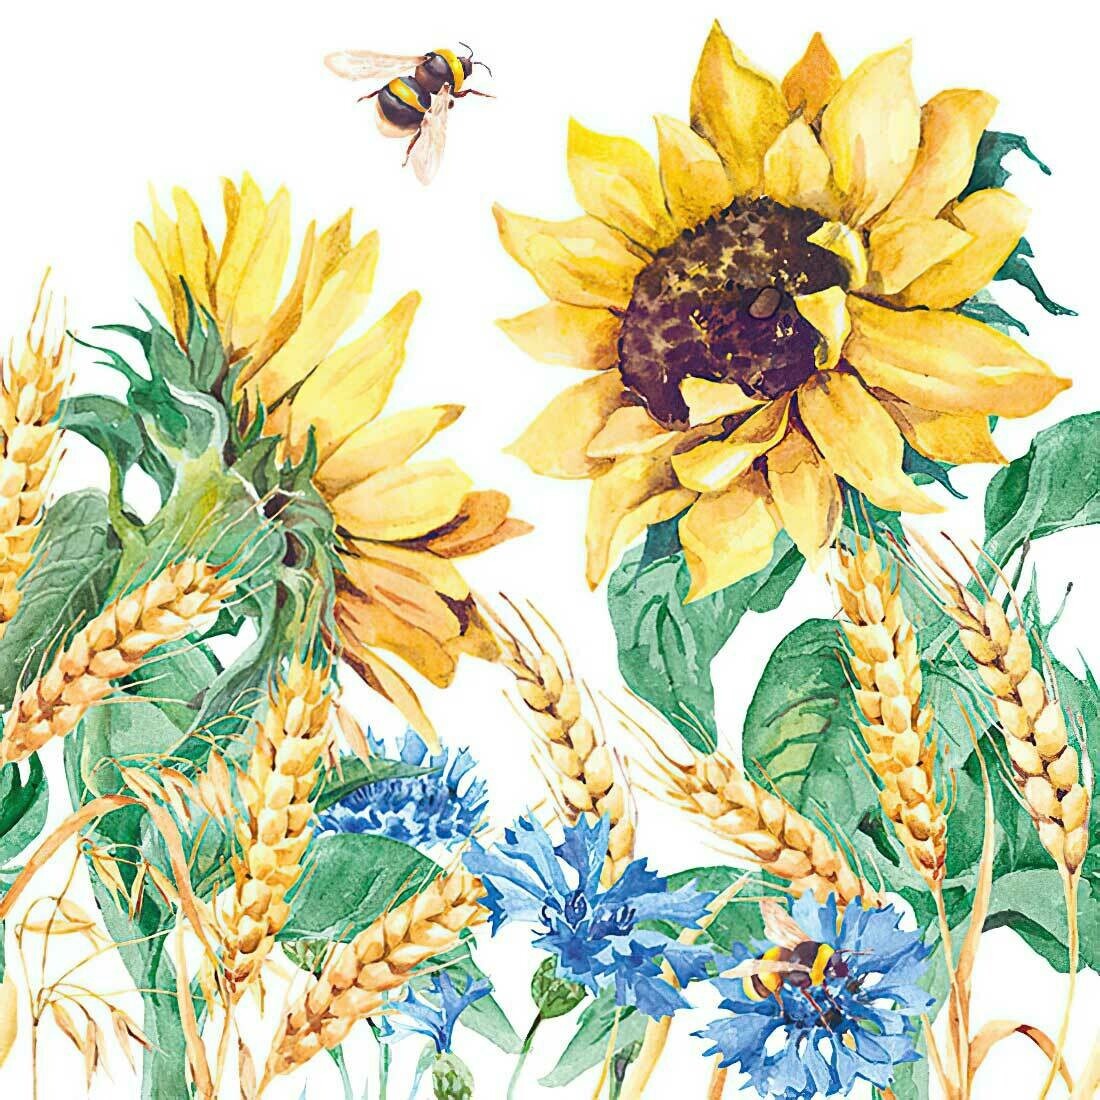 Decoupage Paper Napkins - Floral - Sunflower & Wheat (1 Sheet)